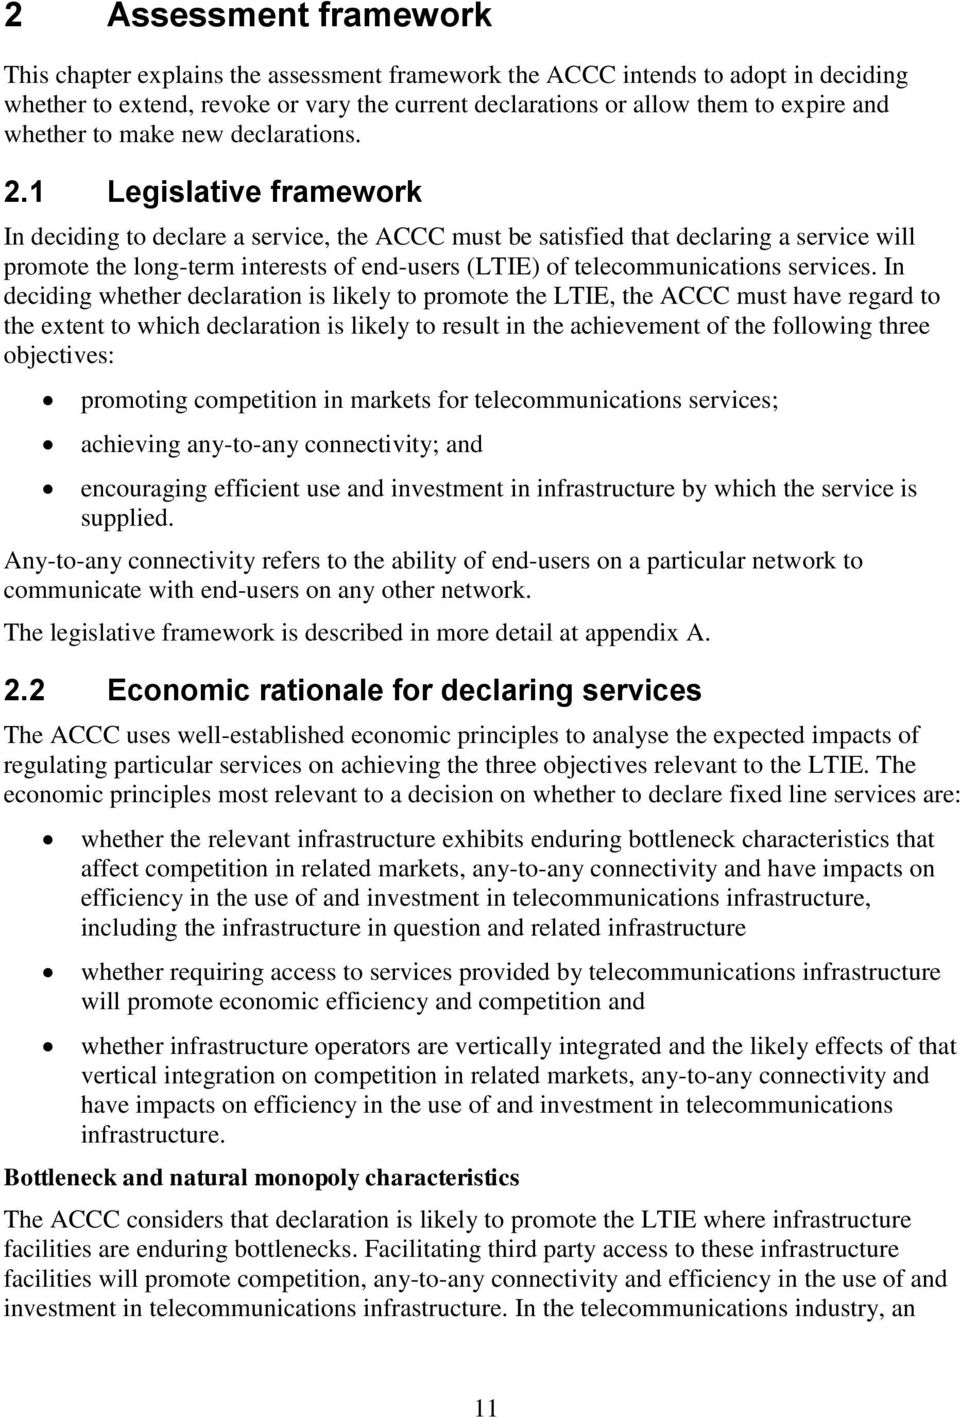 1 Legislative framework In deciding to declare a service, the ACCC must be satisfied that declaring a service will promote the long-term interests of end-users (LTIE) of telecommunications services.